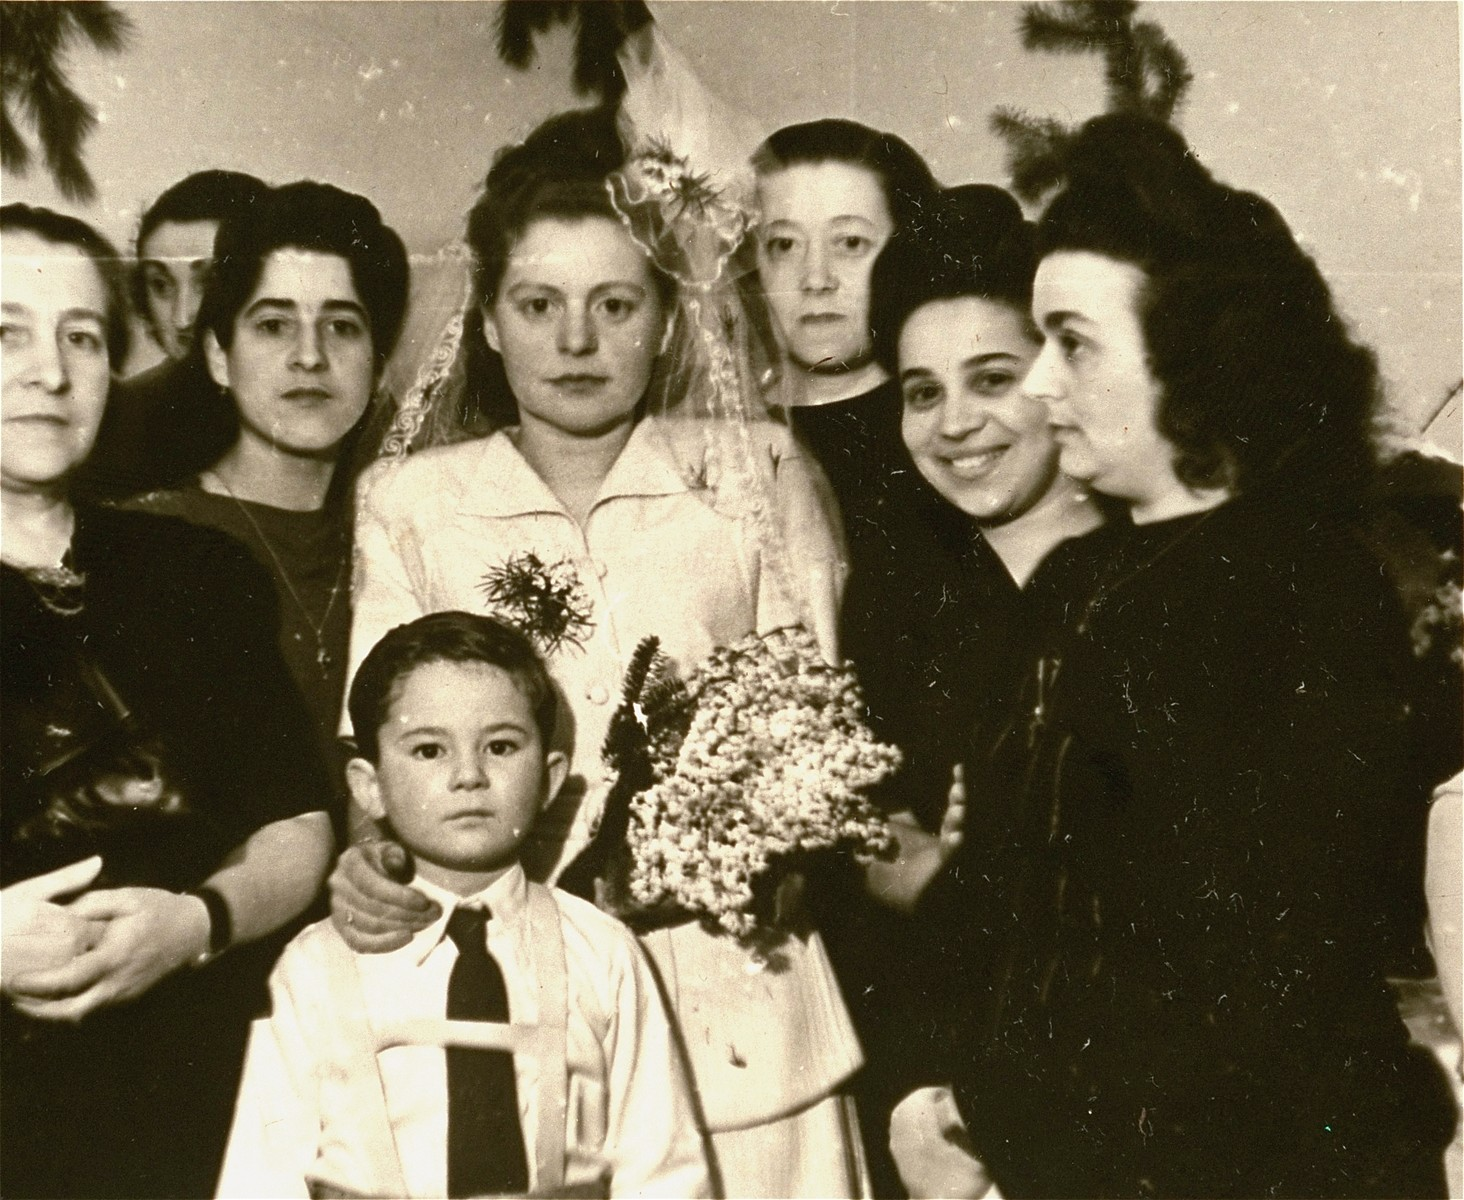 Group portrait of the Mandelbaum wedding party at the Bergen-Belsen displaced persons camp.    Among those pictured are Jurek Kaiser (the child); Lola Mandelbaum (the bride) and Mania Zaks (second from the right).